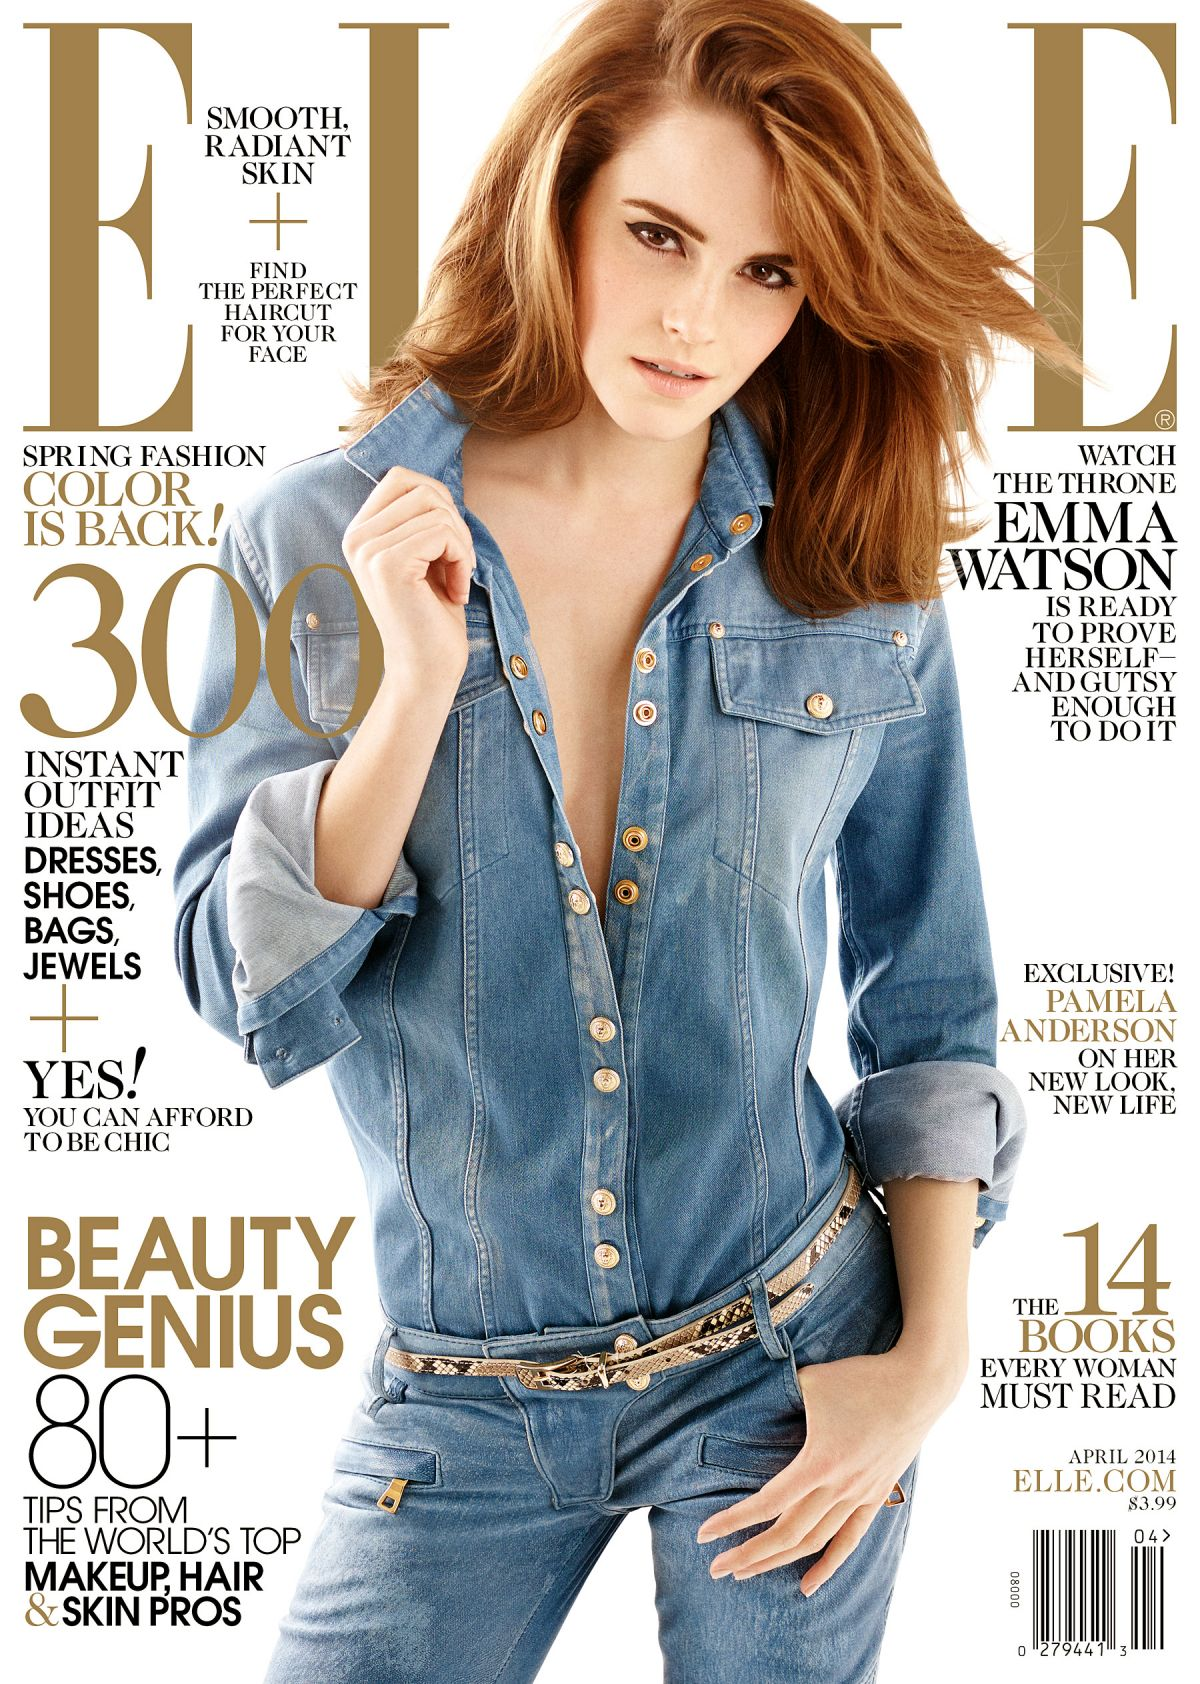 EMMA WATSON in Elle Magazine, April 2014 Issue